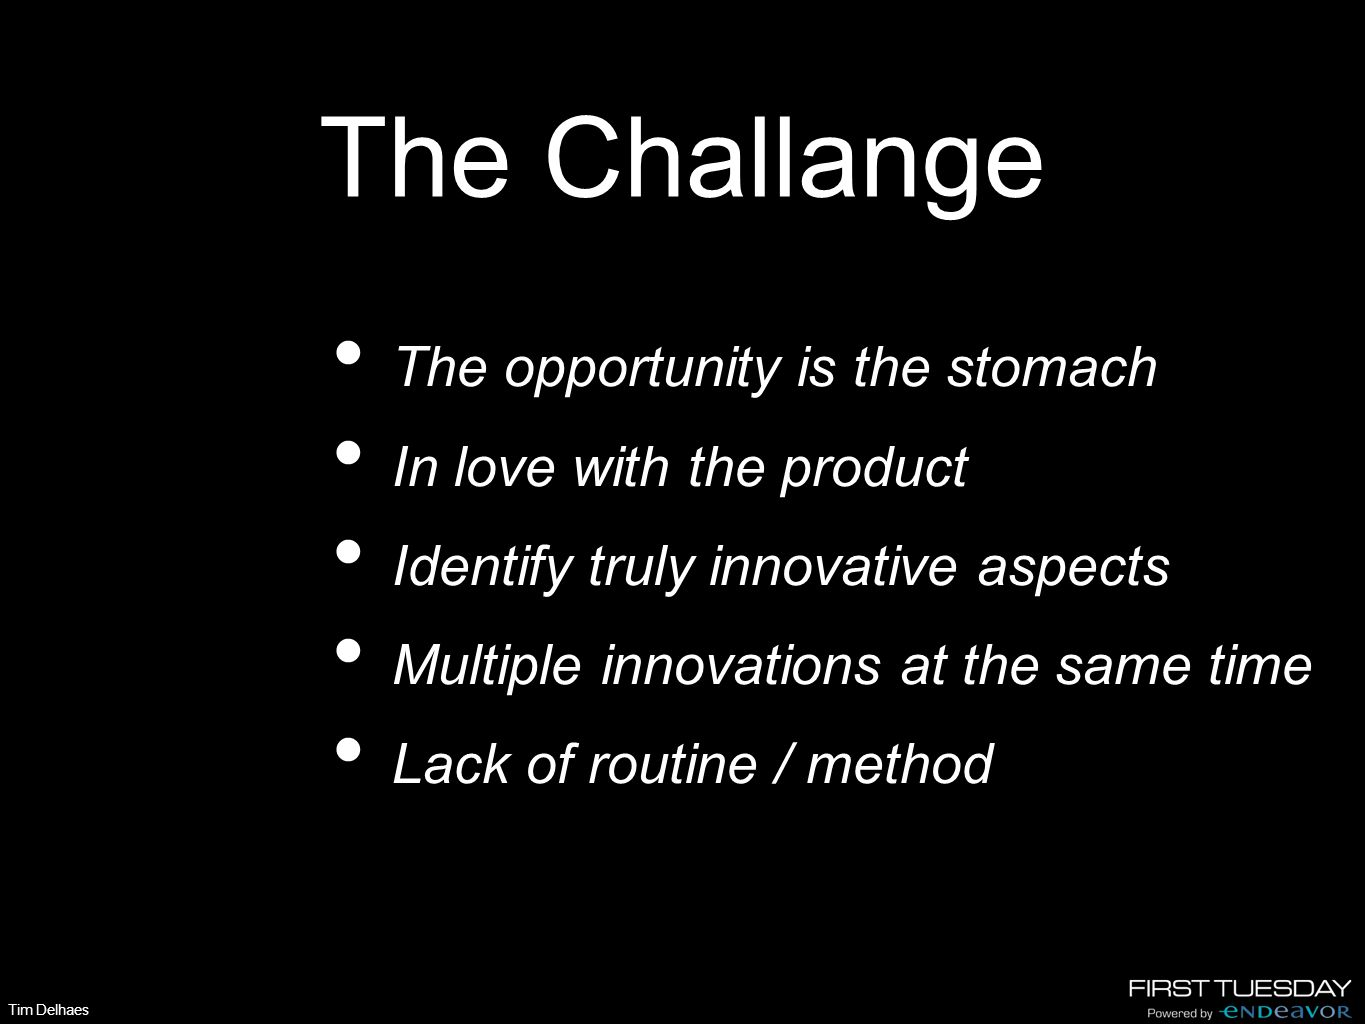 The Challange The opportunity is the stomach In love with the product Identify truly innovative aspects Multiple innovations at the same time Lack of routine / method